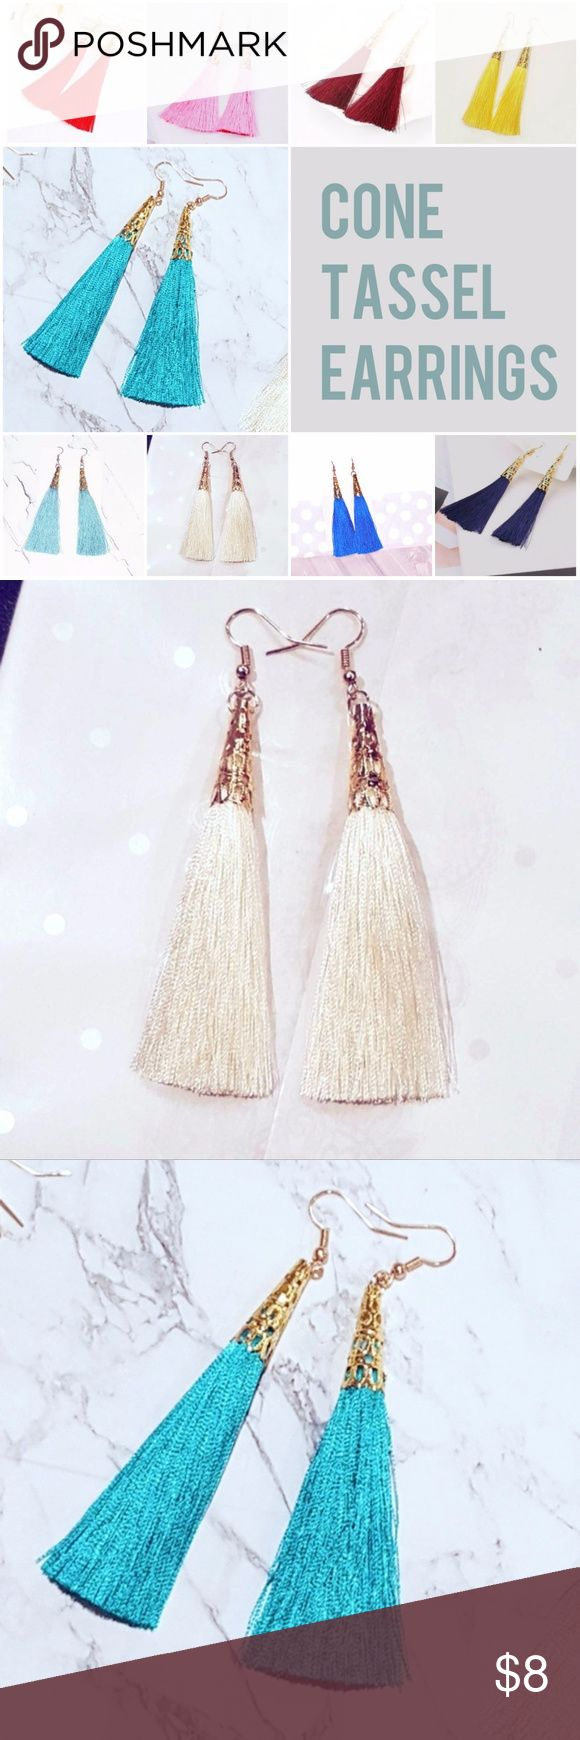 """Cone Tassel Earrings (Multiple Color Options) Cone Tassel Earrings - Approx. 3.3"""" Long. Gold-tone Hardware. ___________________________________________ Available in:   *Red   *Pink   *Wine Red   *Yellow   *Turquoise   *Peach   *Light Blue   *Cream   *Black   *Royal Blue   *Navy Blue   *Brown  (cb159) Jewelry Earrings"""